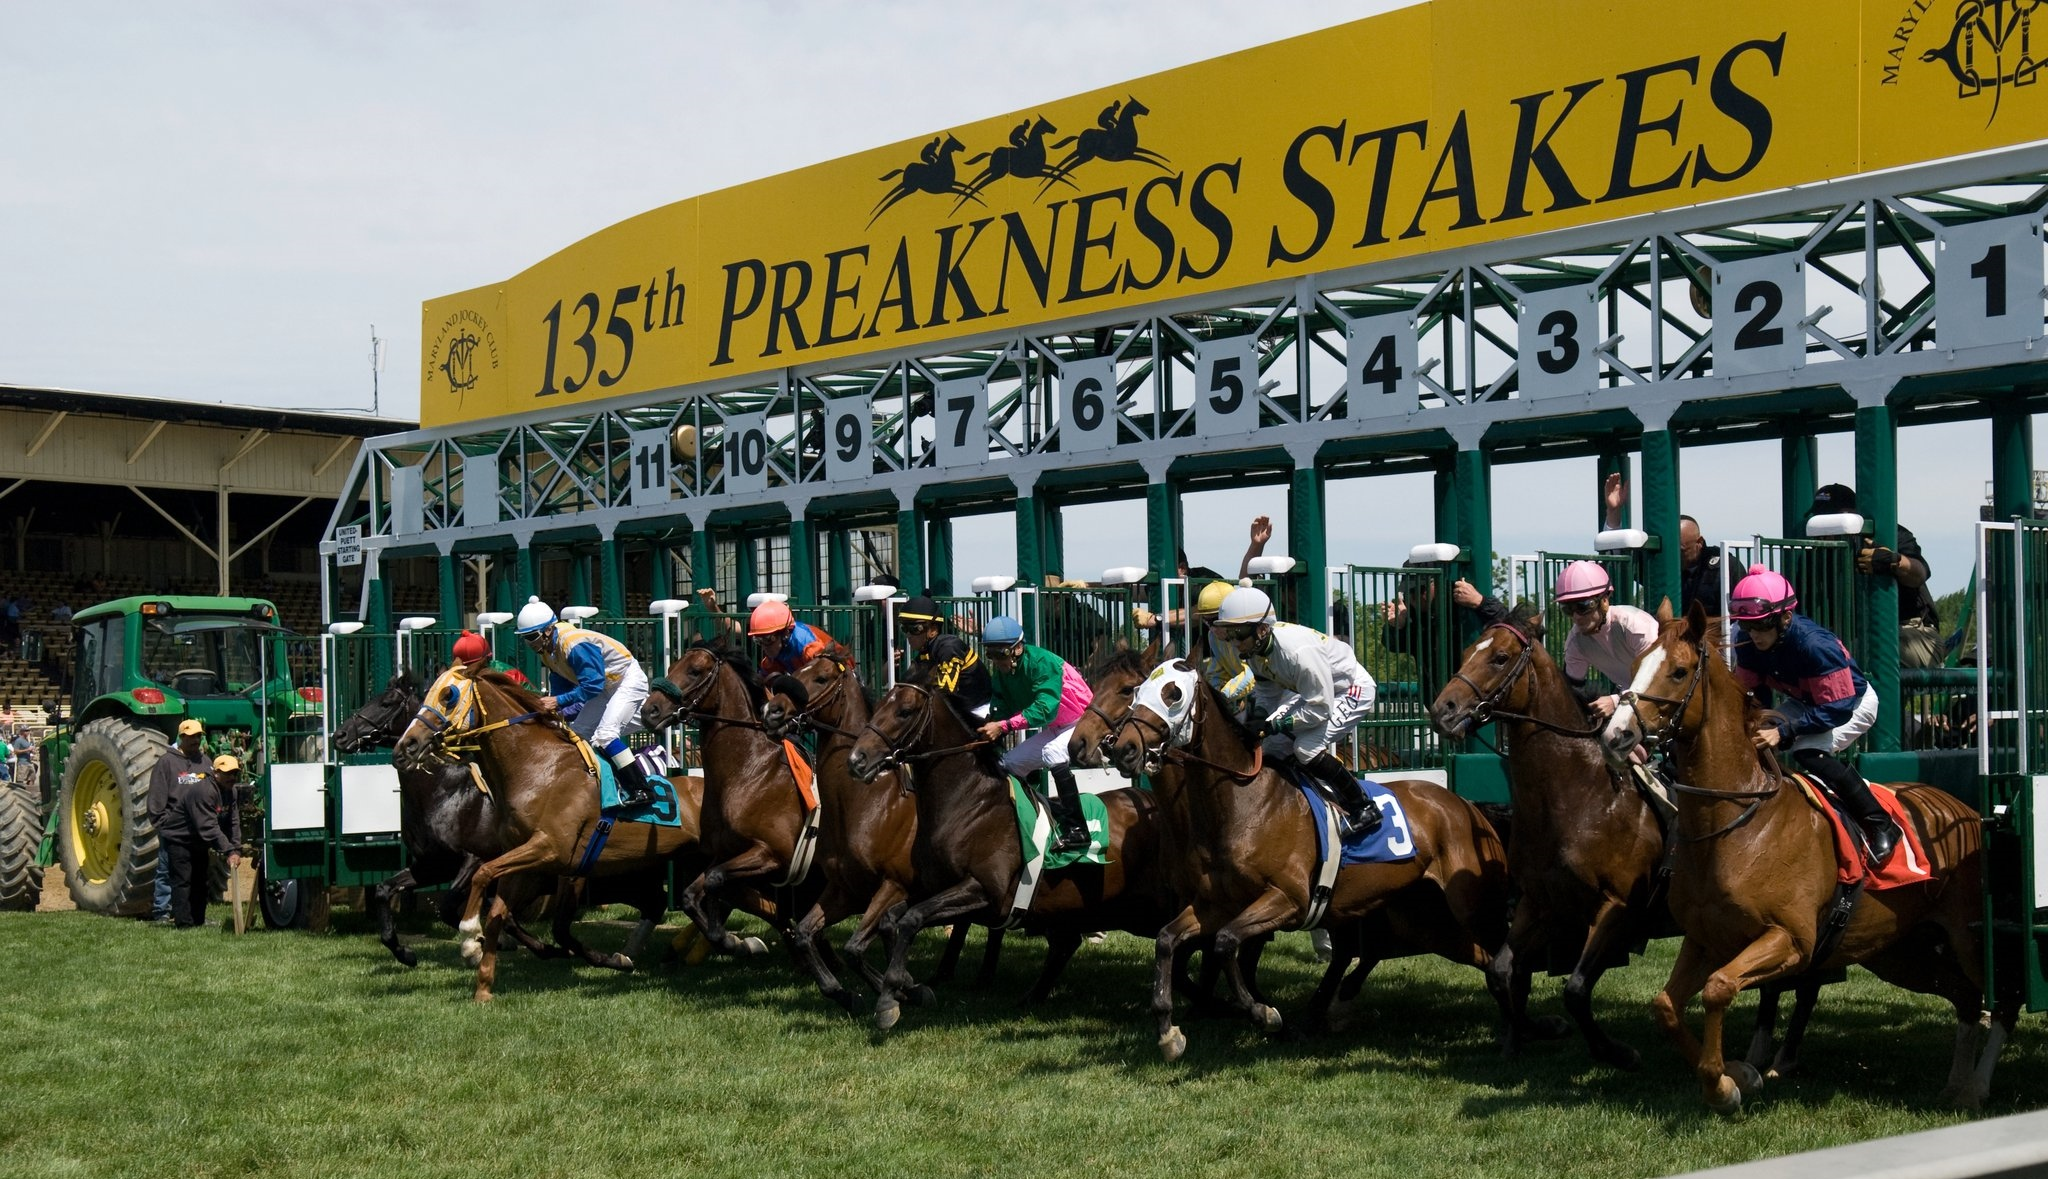 Belmont stakes what to wear